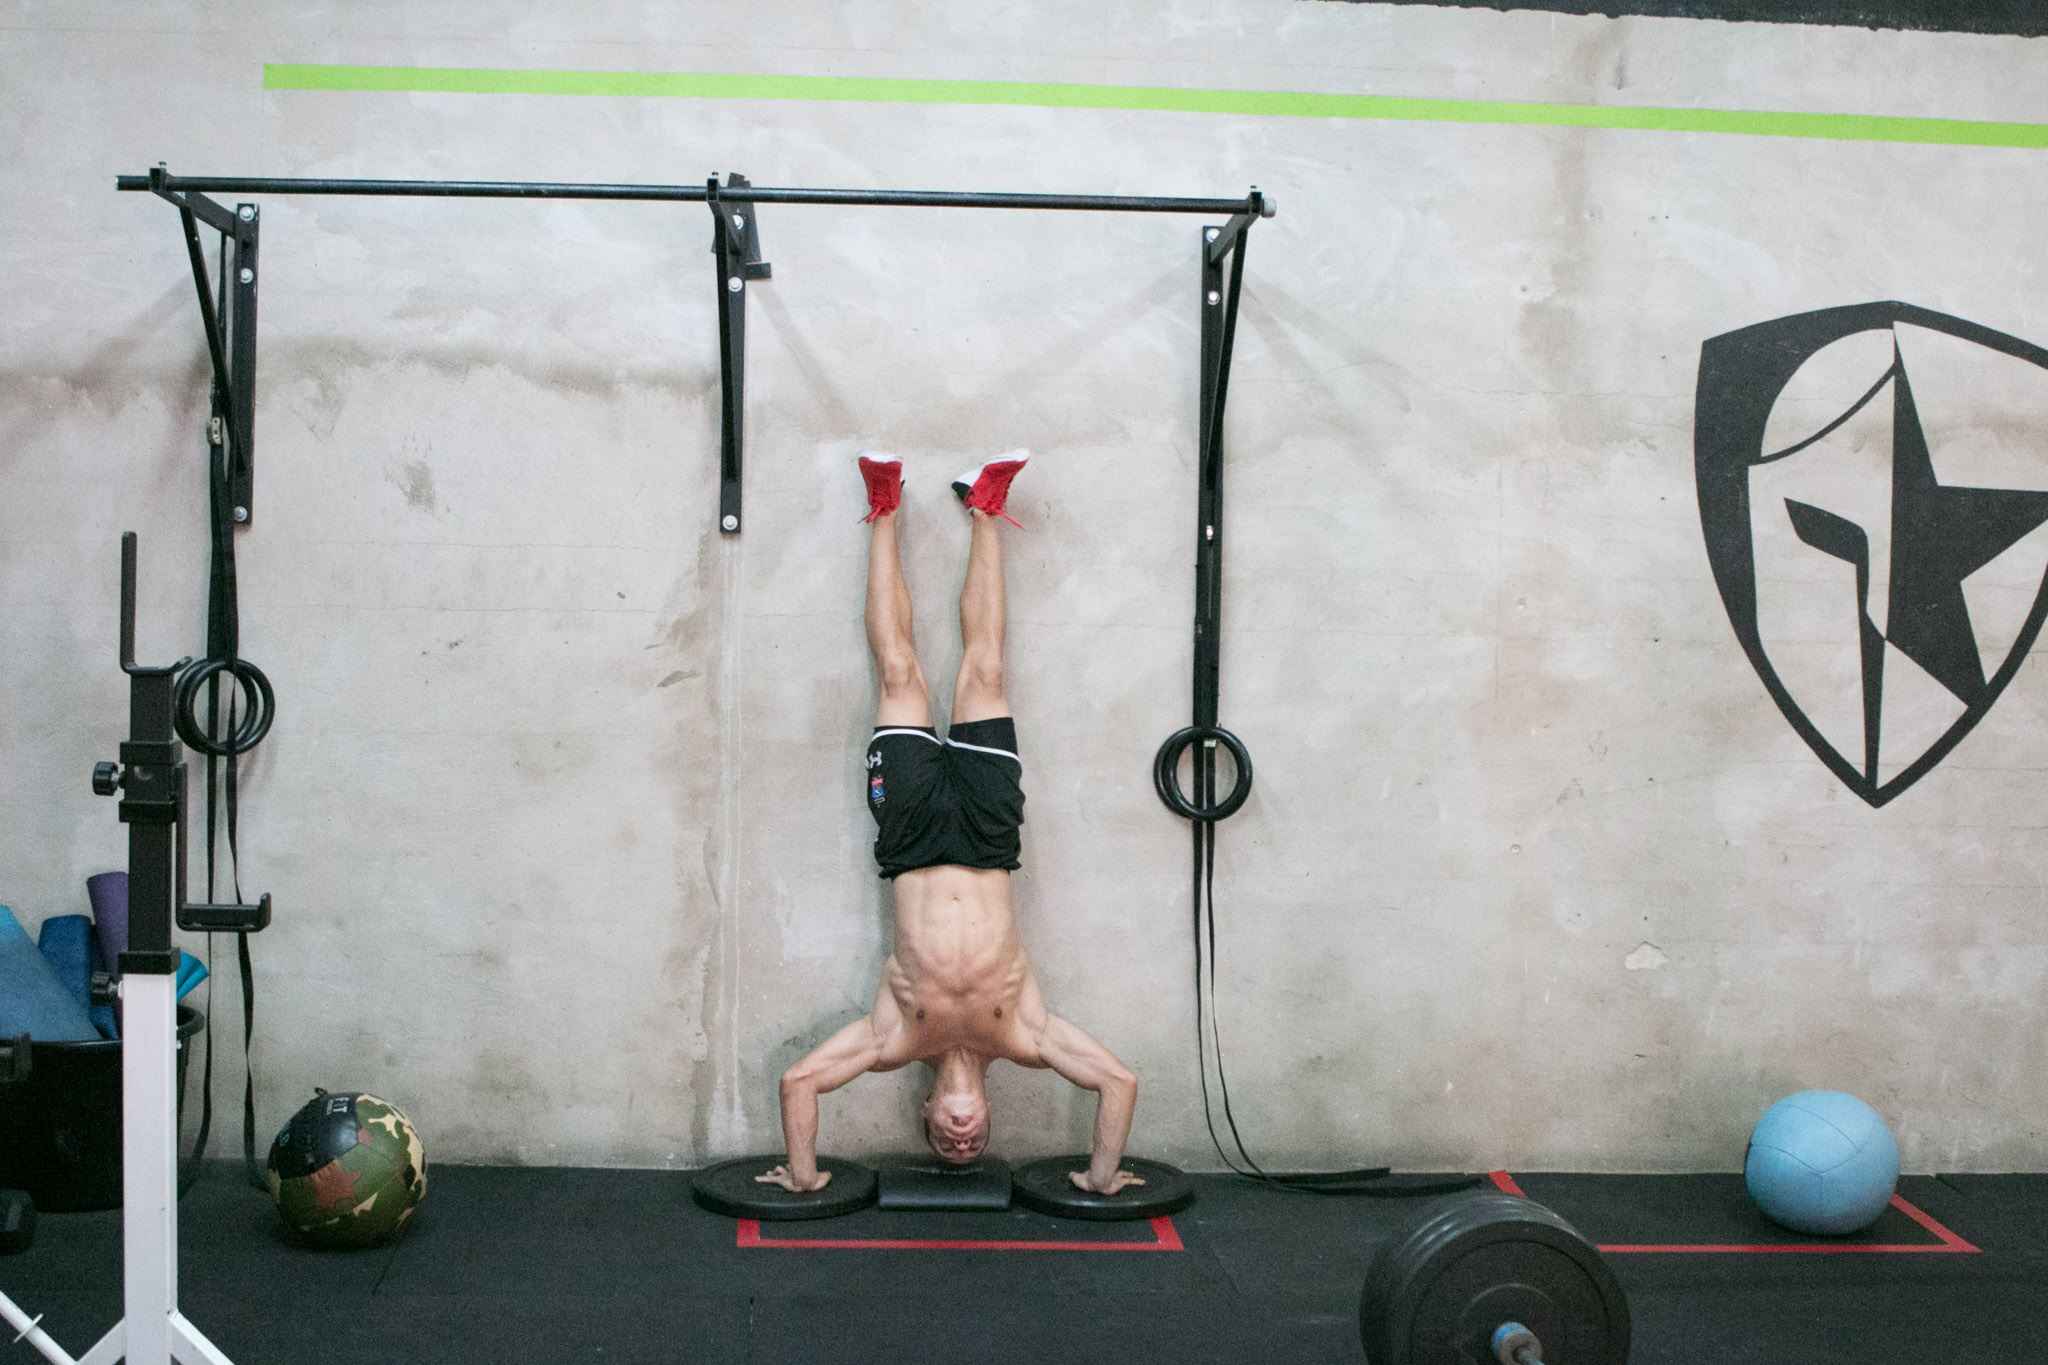 Lufe Torres practices his hand stand pushups before the opening stage of the CrossFit Games.